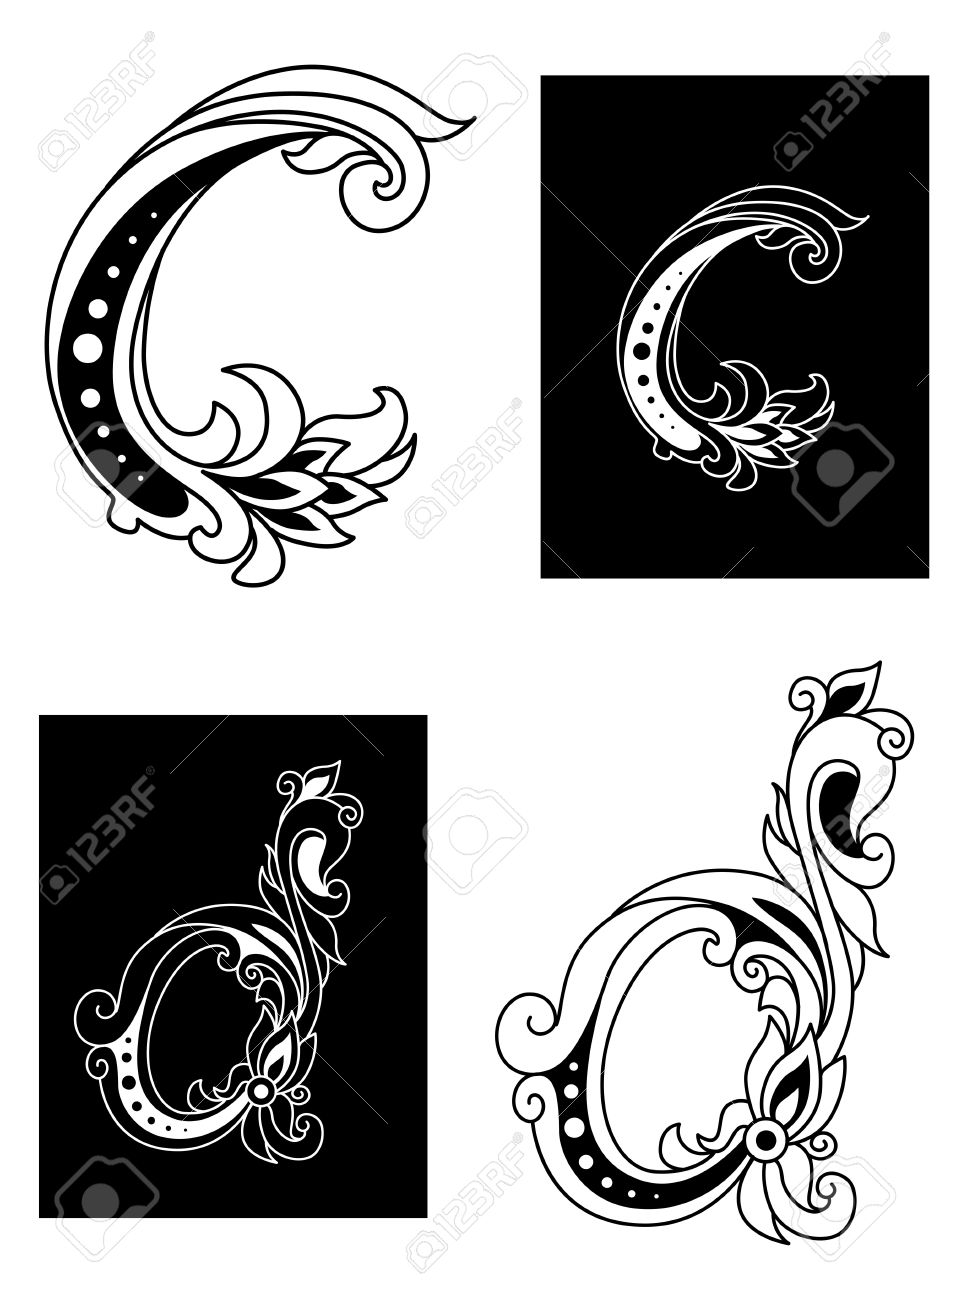 Decorative letters C and D in floral style isolated on background Stock  Vector - 20444260 04a605255e